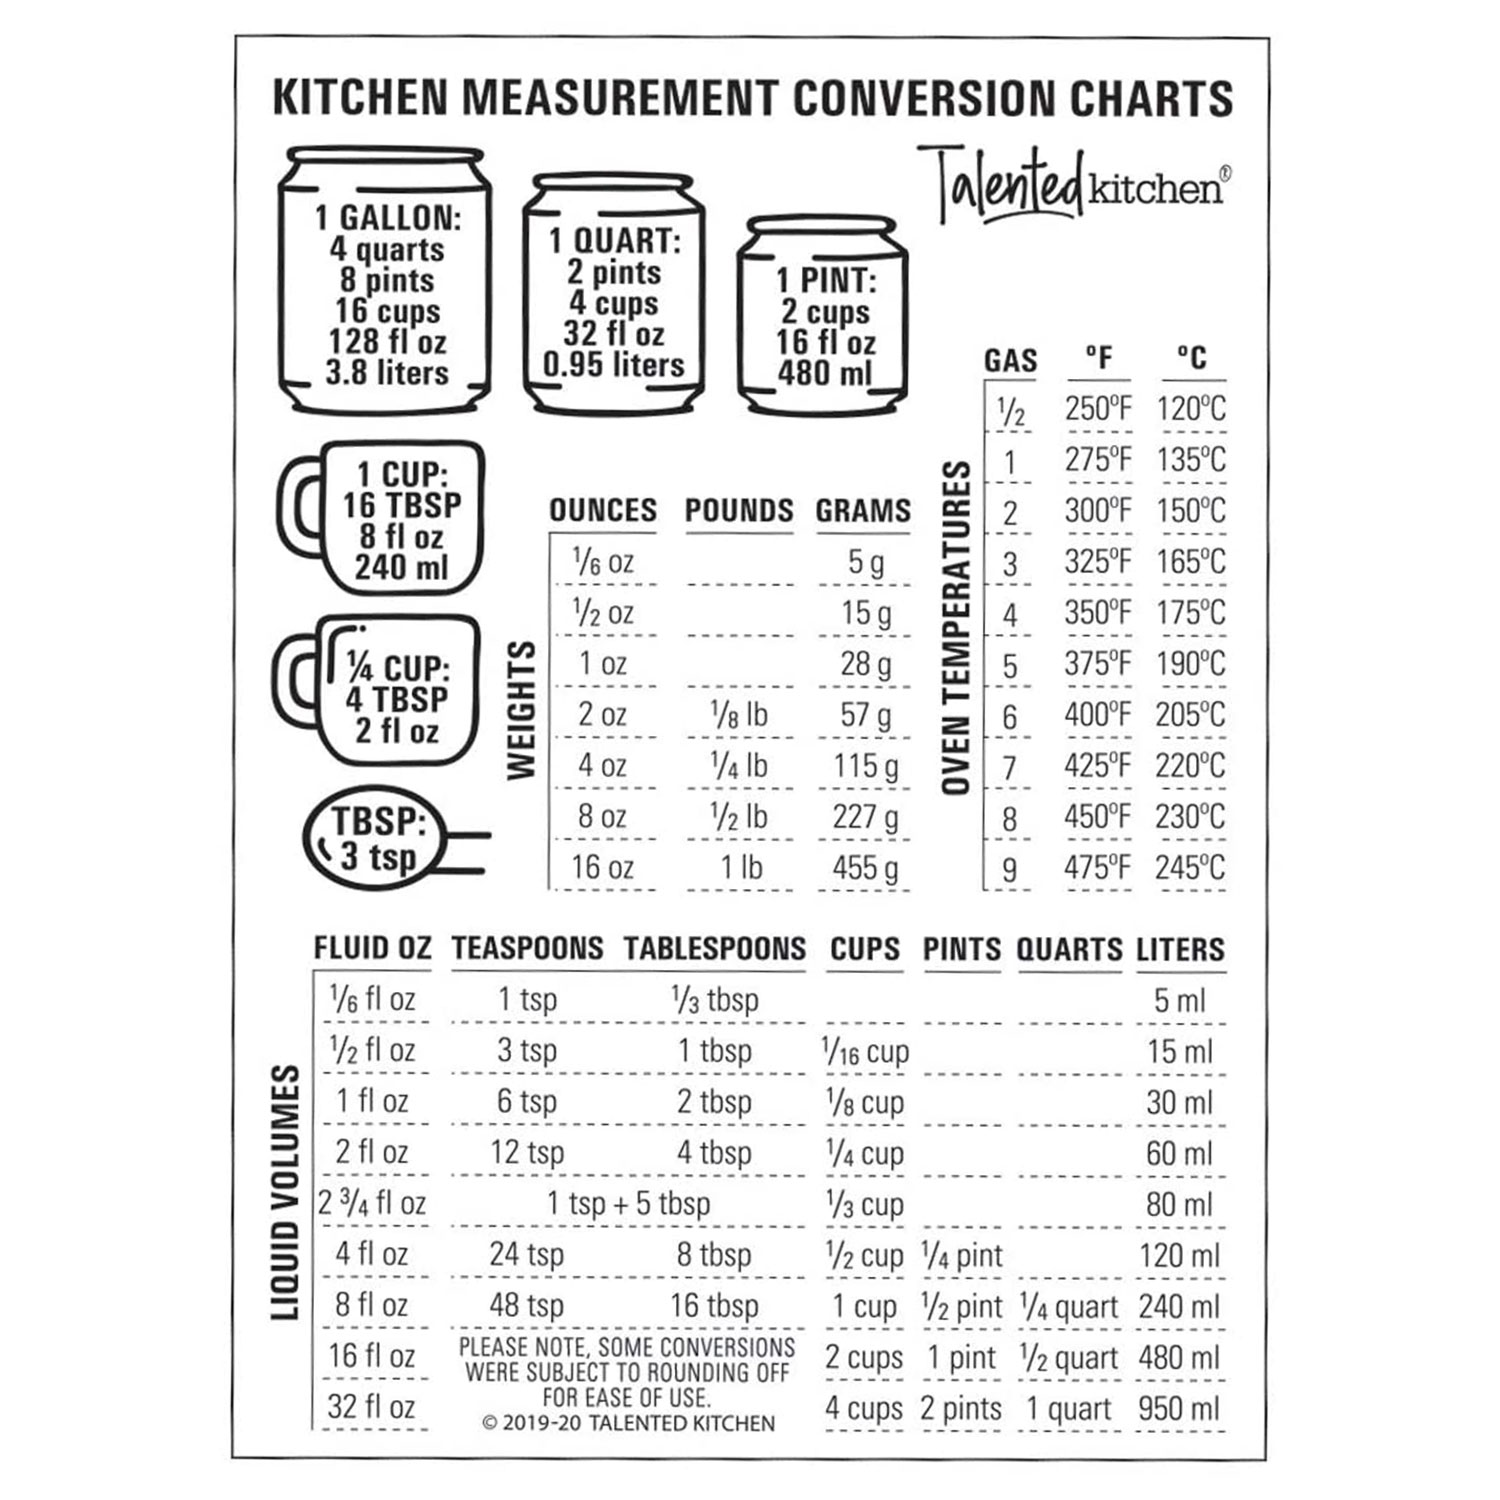 Talented Kitchen Magnetic Kitchen Conversion Chart.